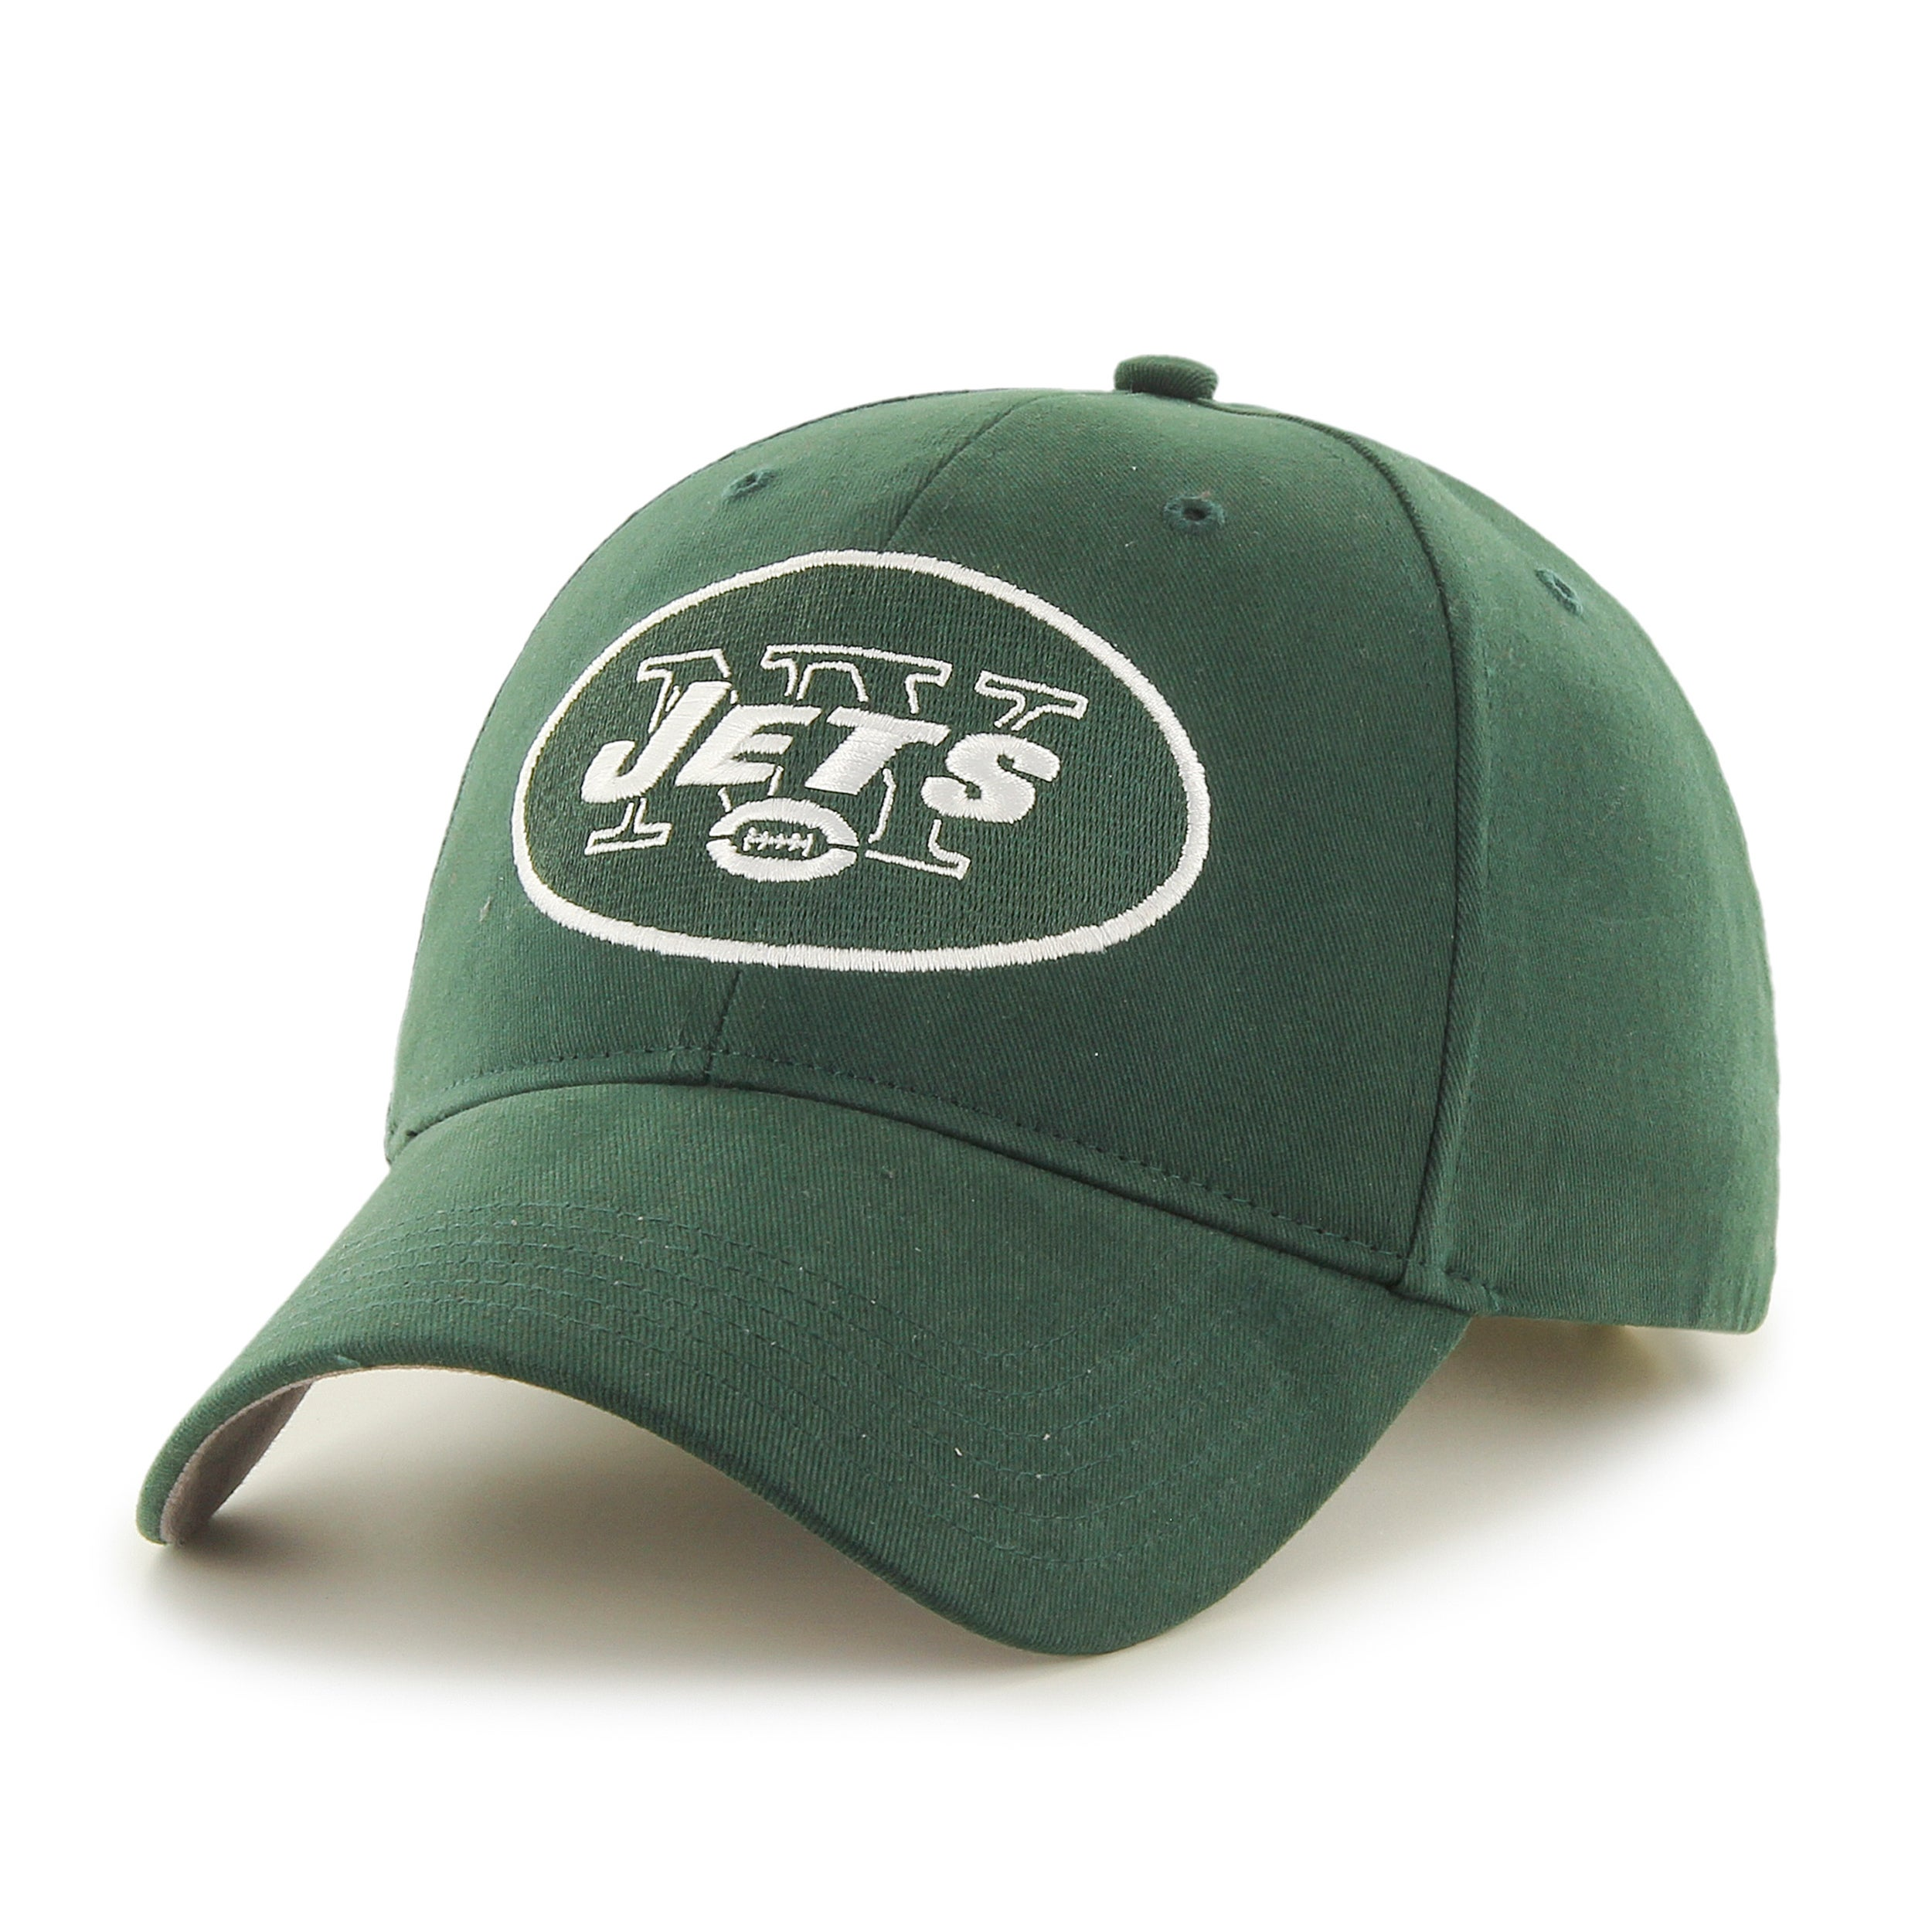 finest selection 329f3 1690f Shop 47 Brand New York Jets NFL Basic Hook and Loop Hat - Free Shipping On  Orders Over  45 - Overstock - 10949089